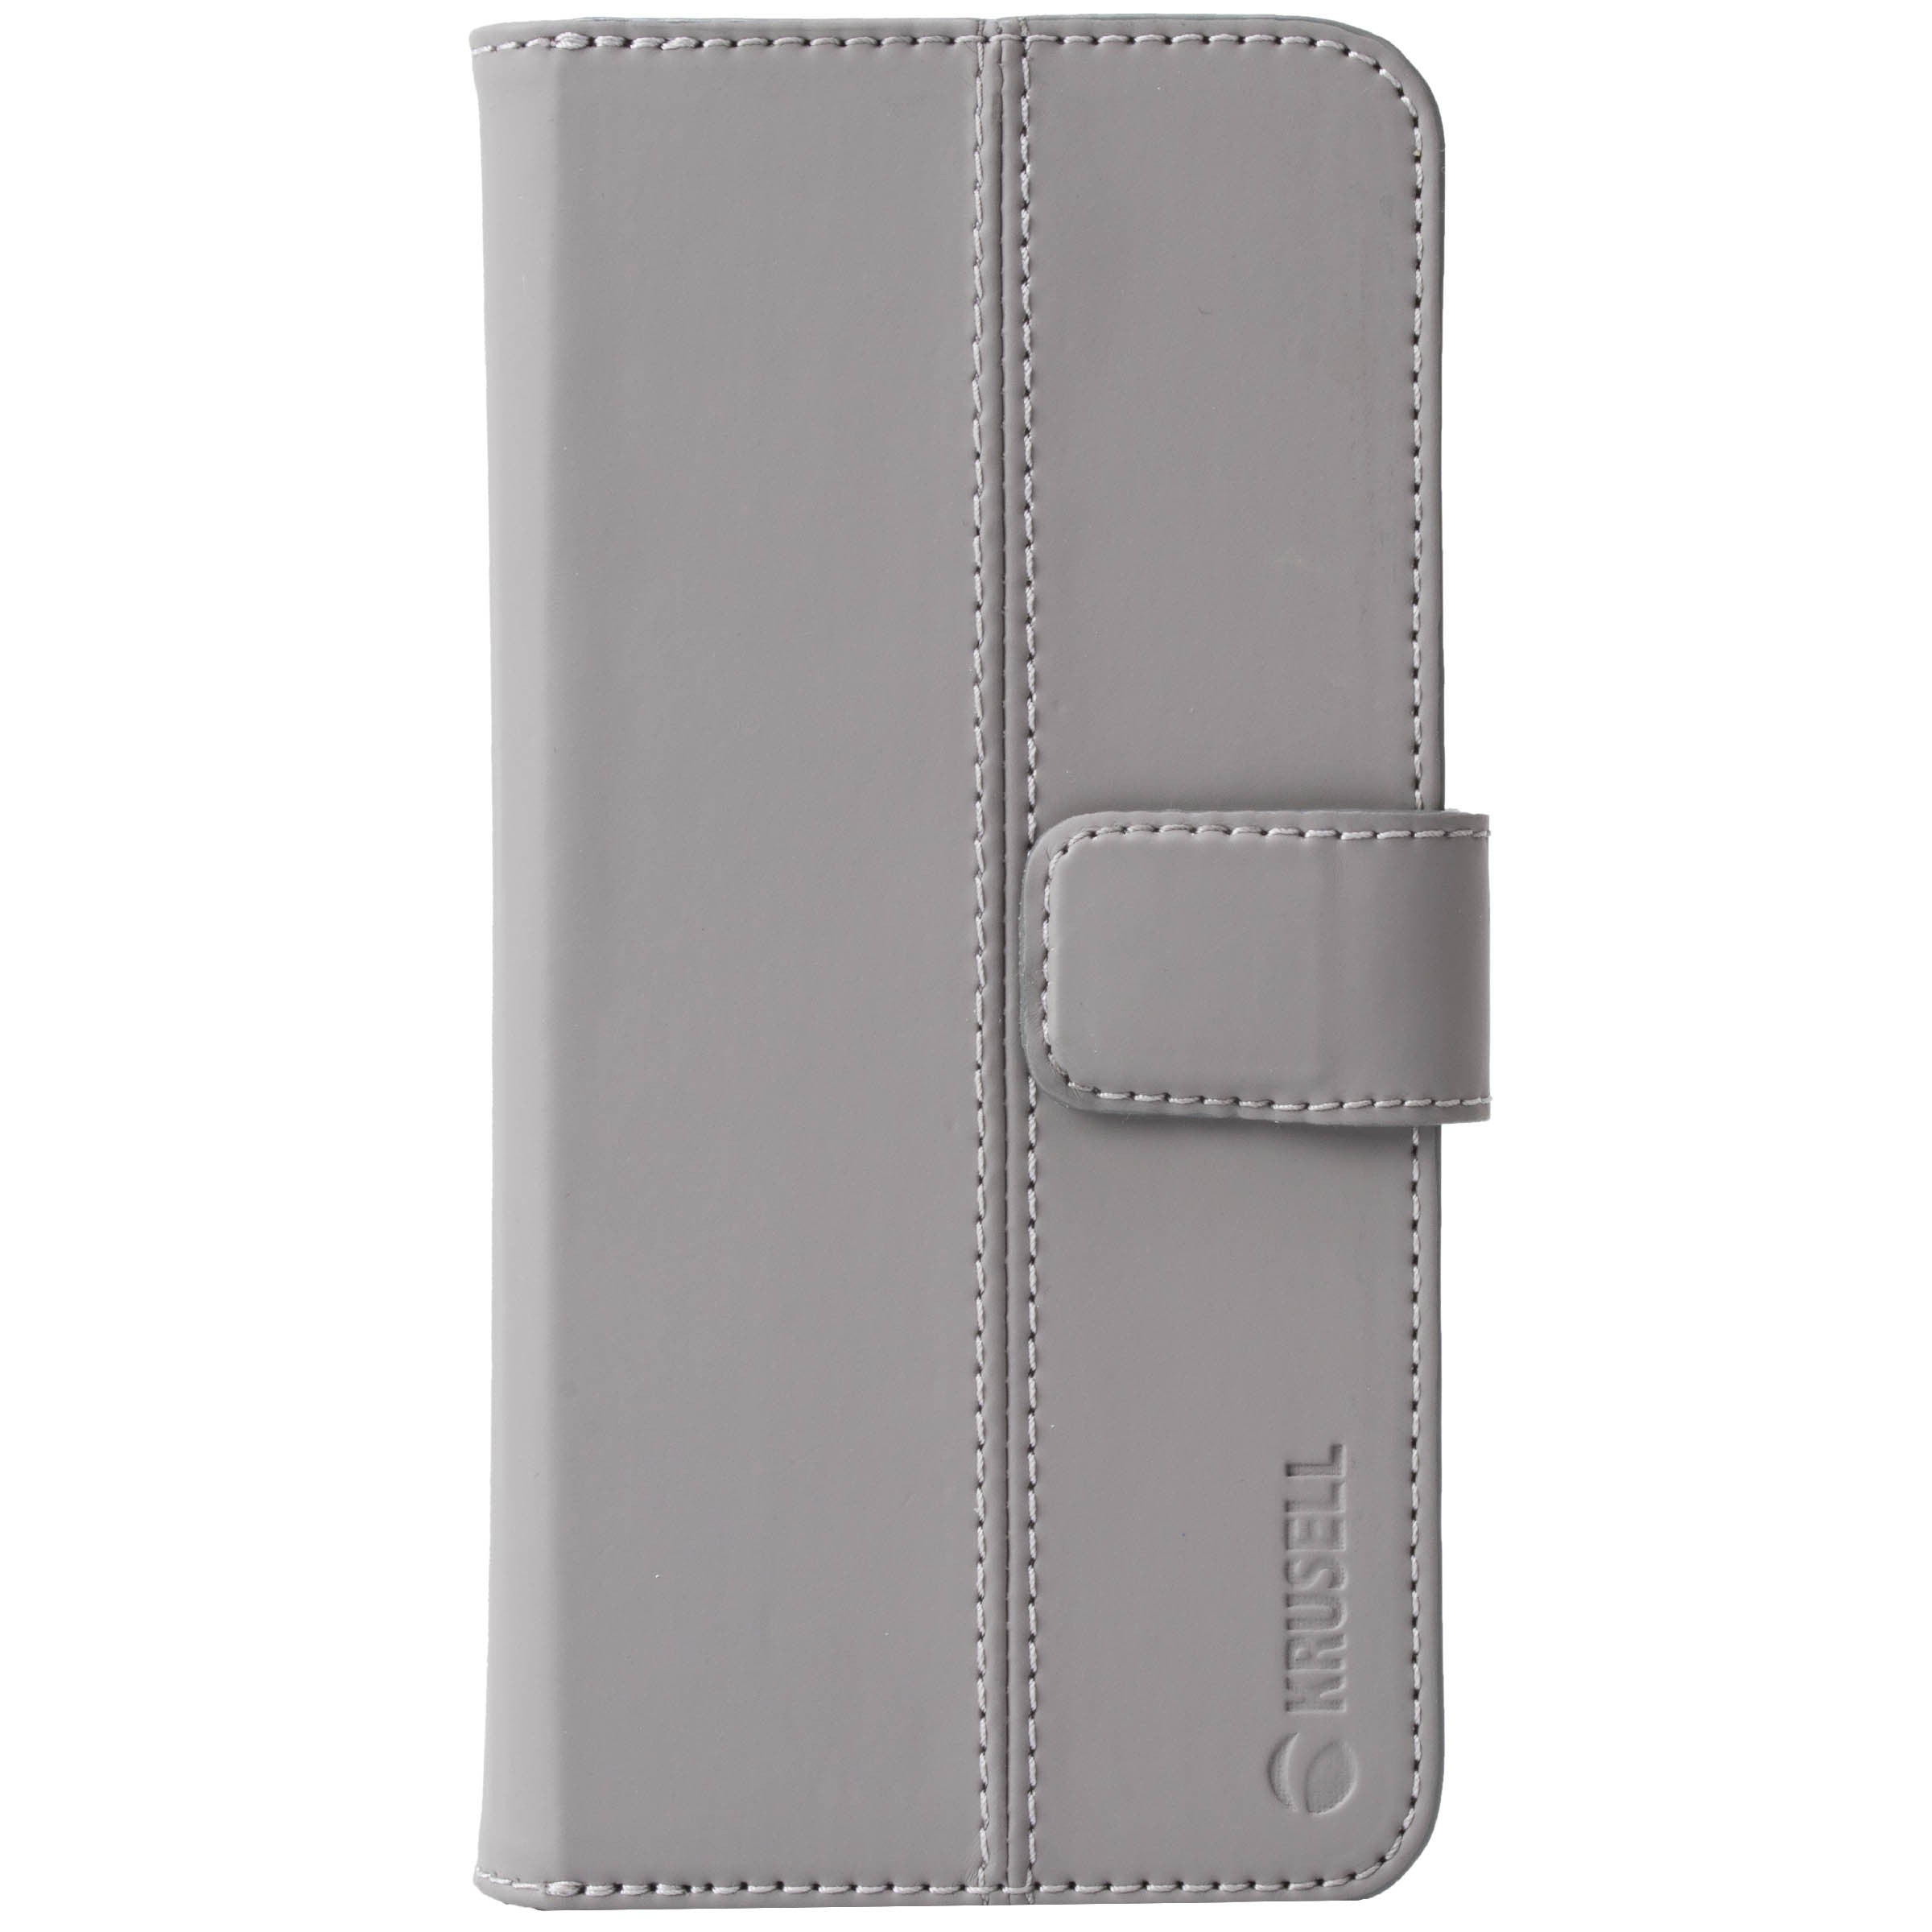 Samsung Galaxy S9, LOKA FOLIOWALLET 2IN1